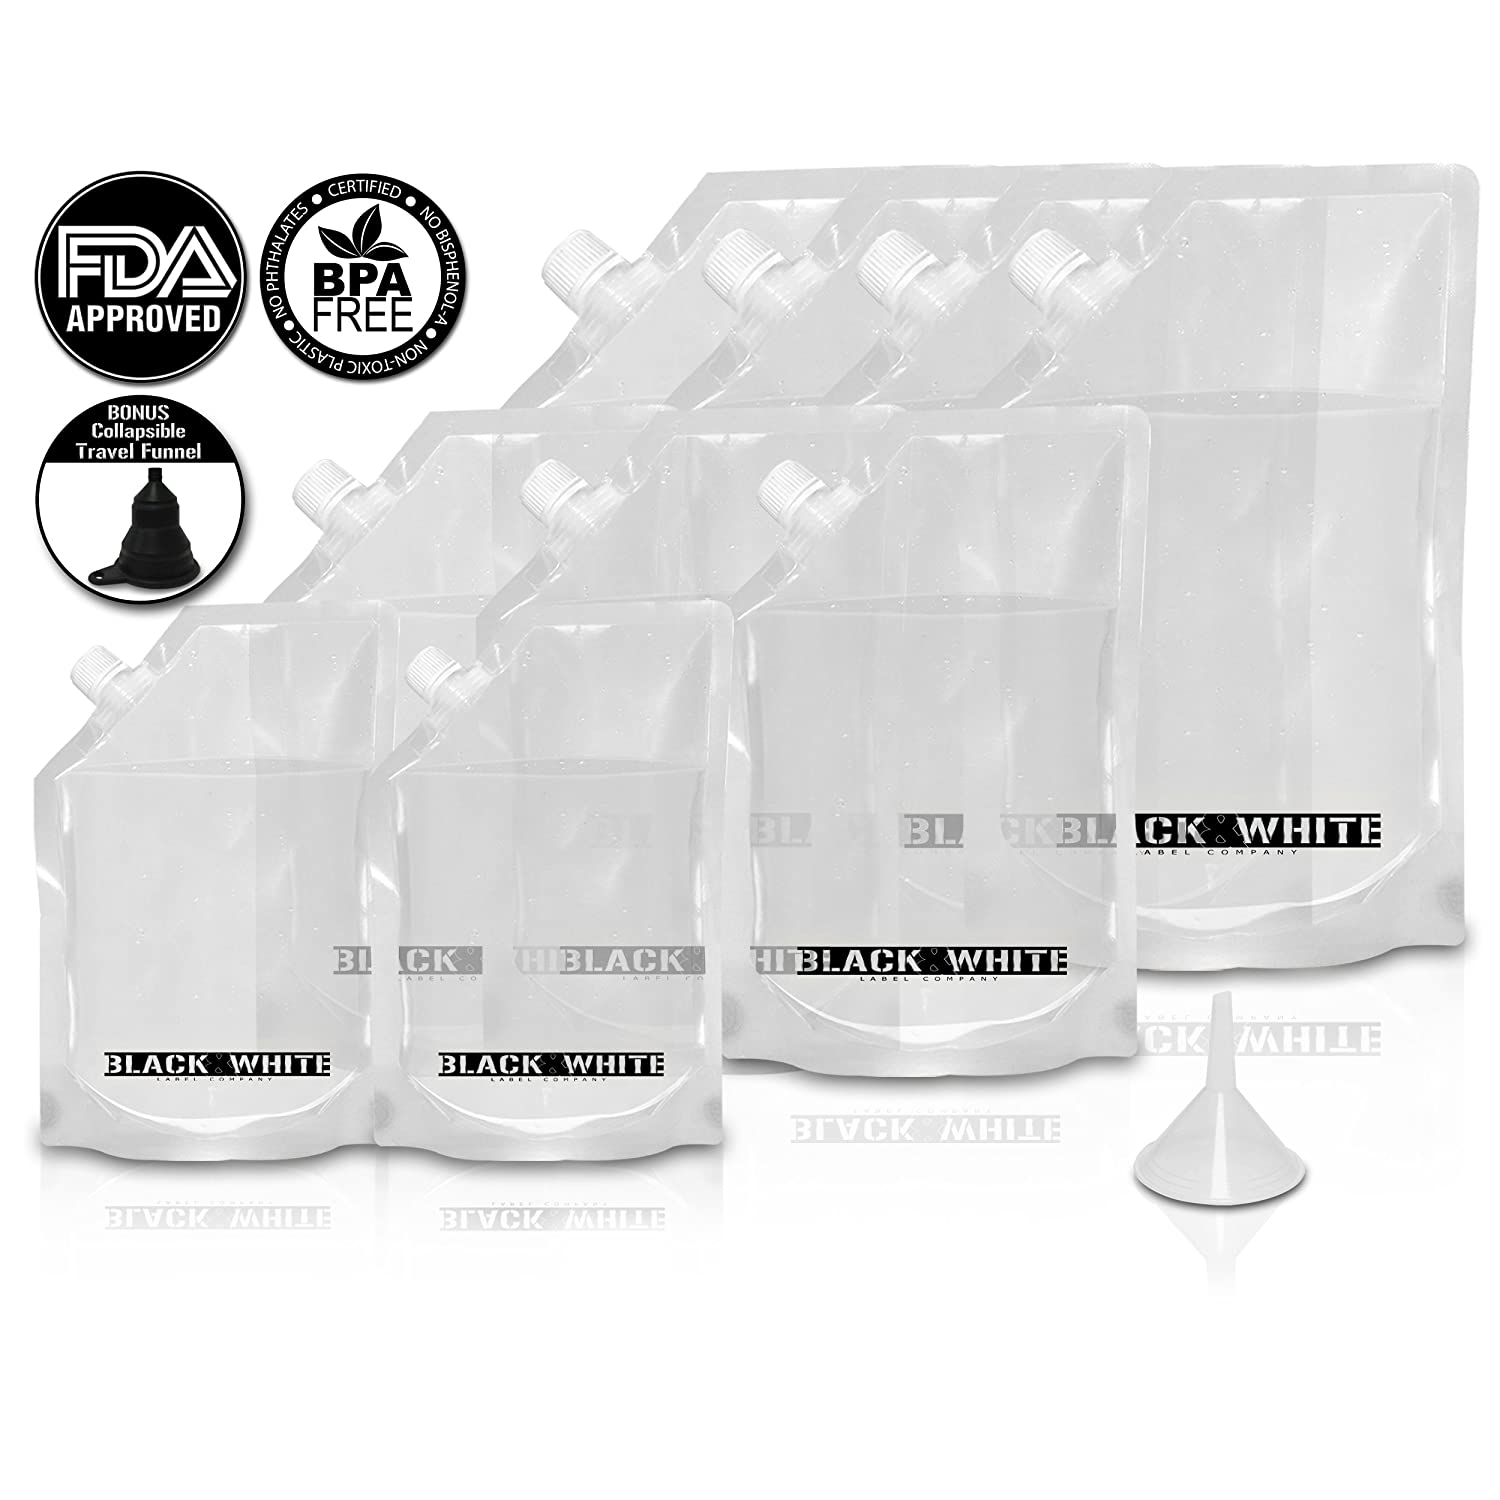 Amazon 9 Black & White Label Premium Plastic Flasks Liquor